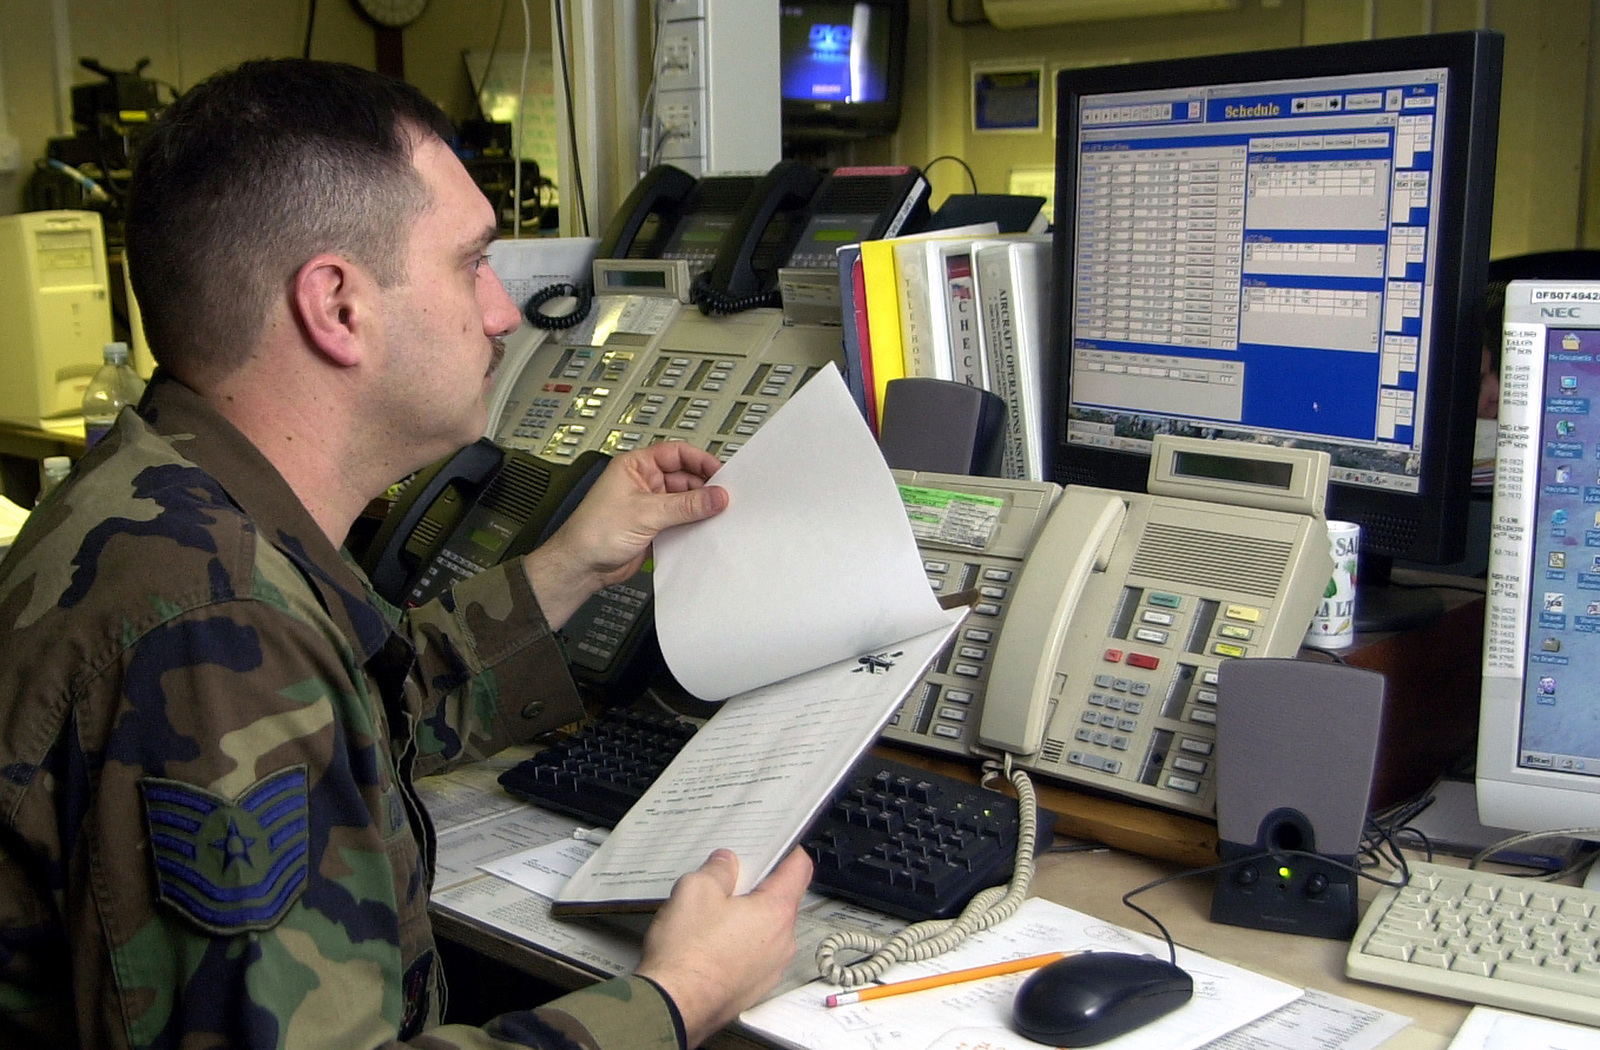 US Air Force (USAF) Technical Sergeant (TSGT) John Cormiea, Maintenance Operations Center SENIOR Controller, 100th Maintenance Operations Squadron (MOS), reviews the prior permission request log to ensure an inbound aircraft has permission to land at RAF Mildenhall